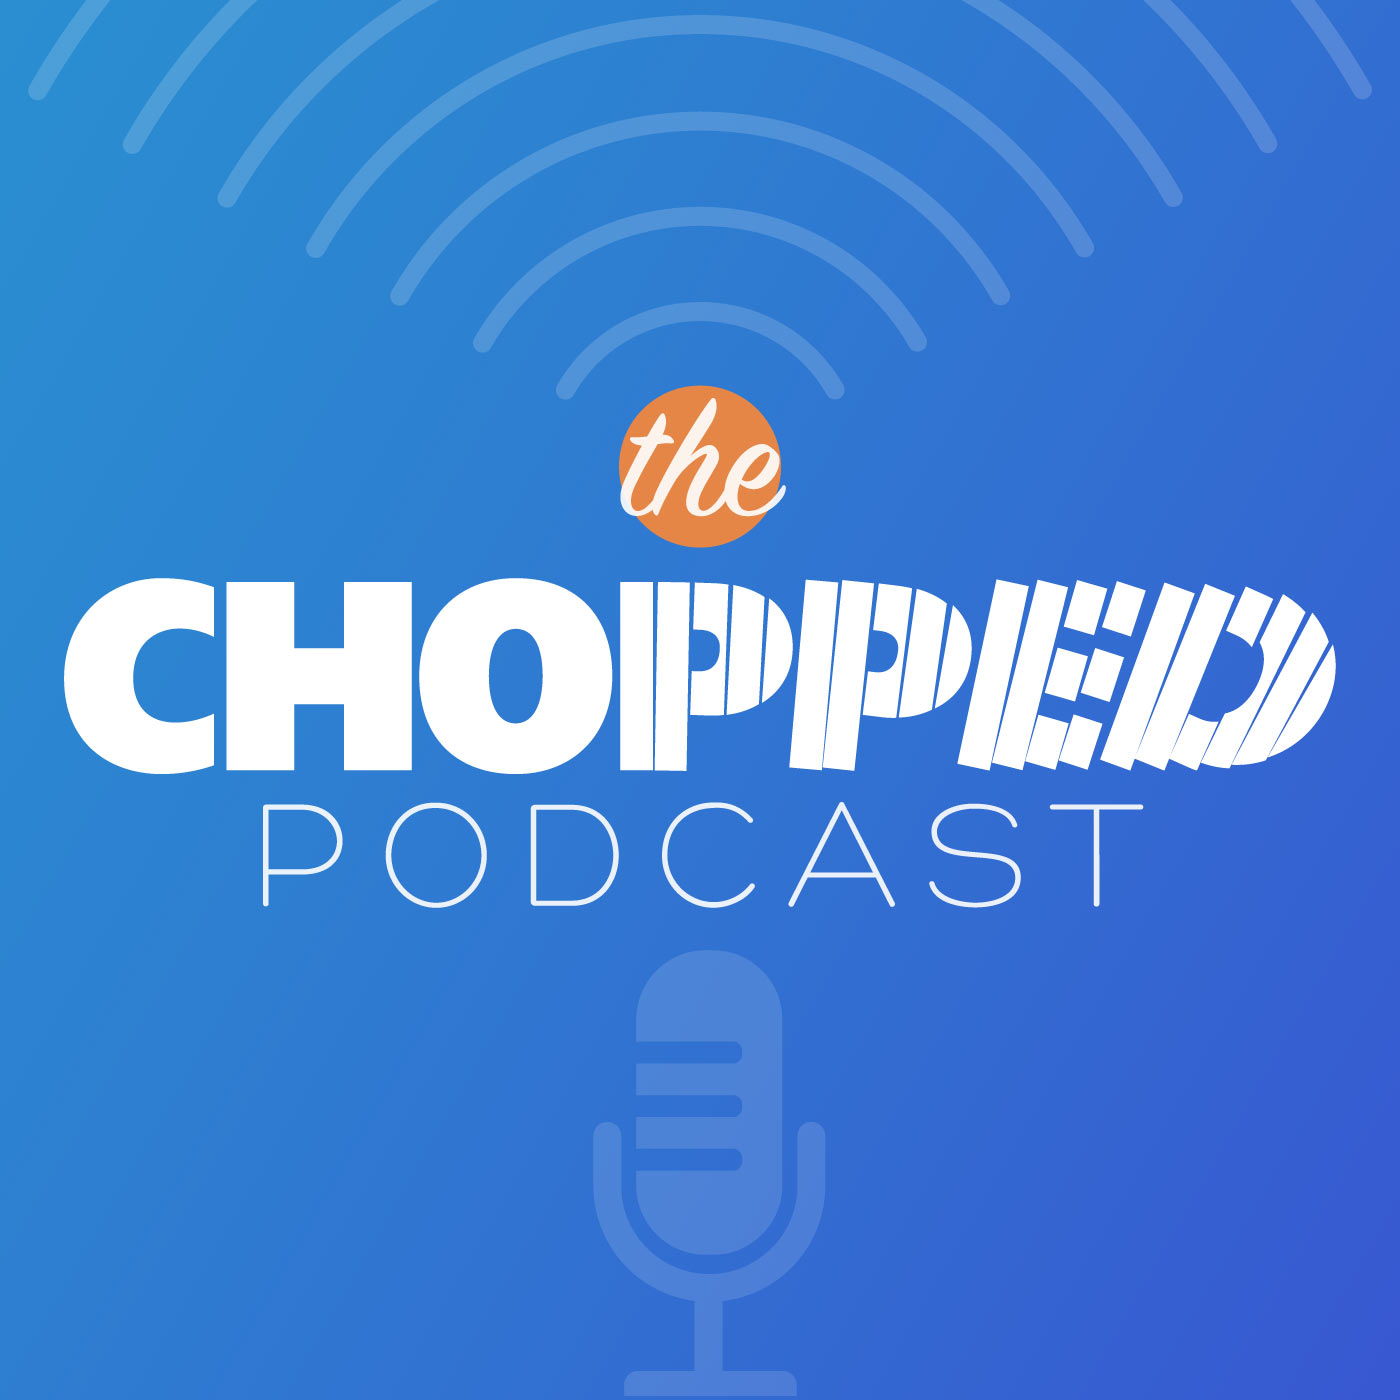 The Chopped Podcast podcast show image